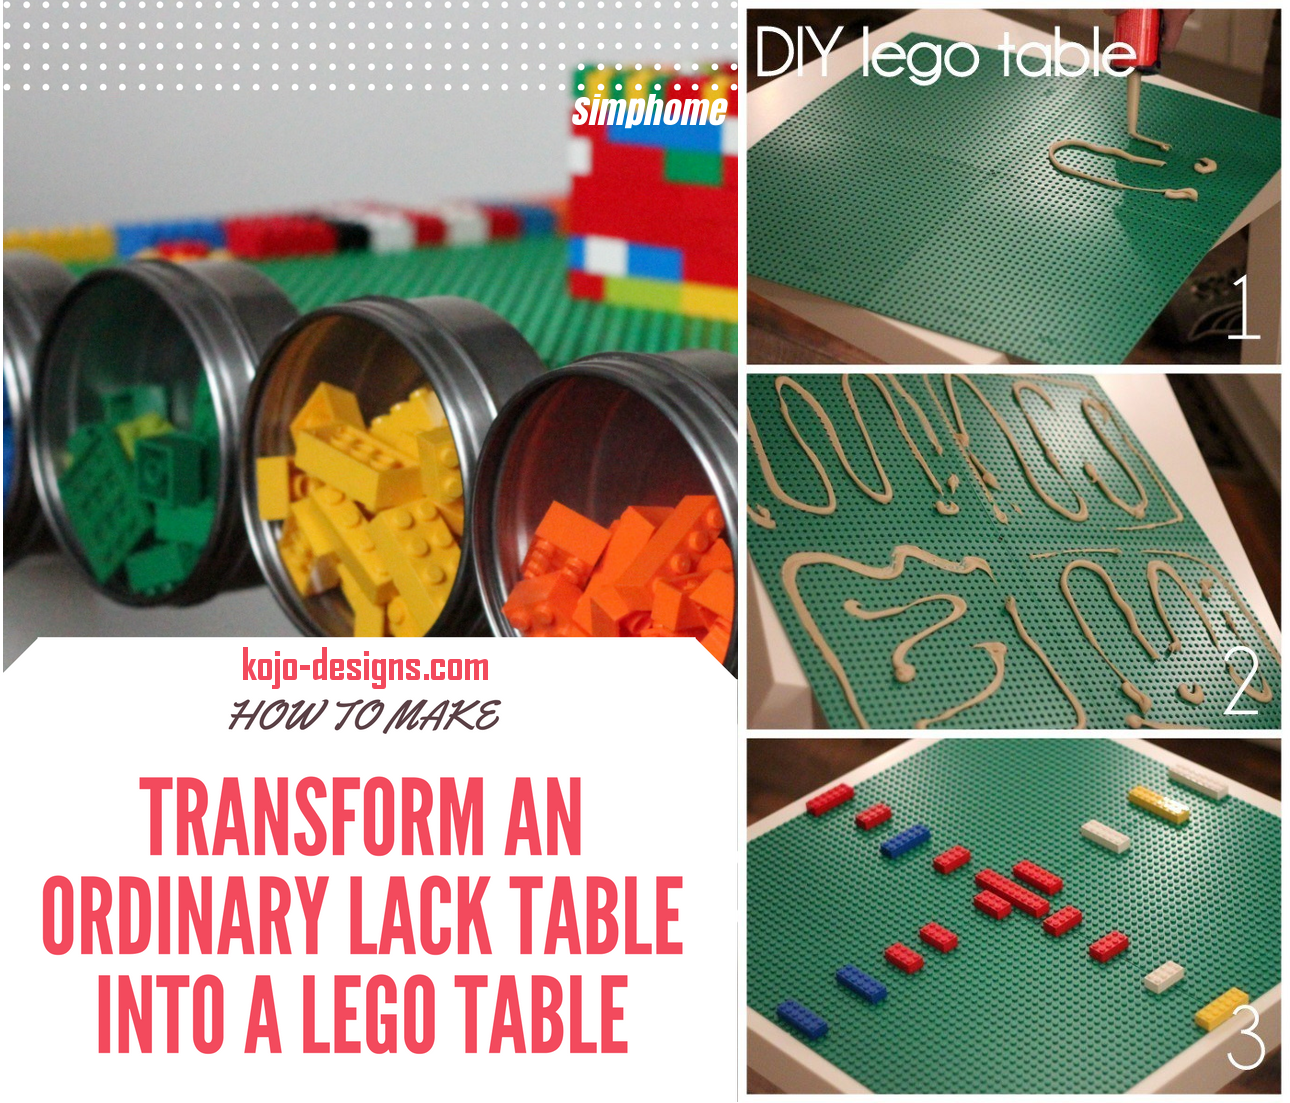 24 Transform an ordinary LACK table into a lego table via simphome